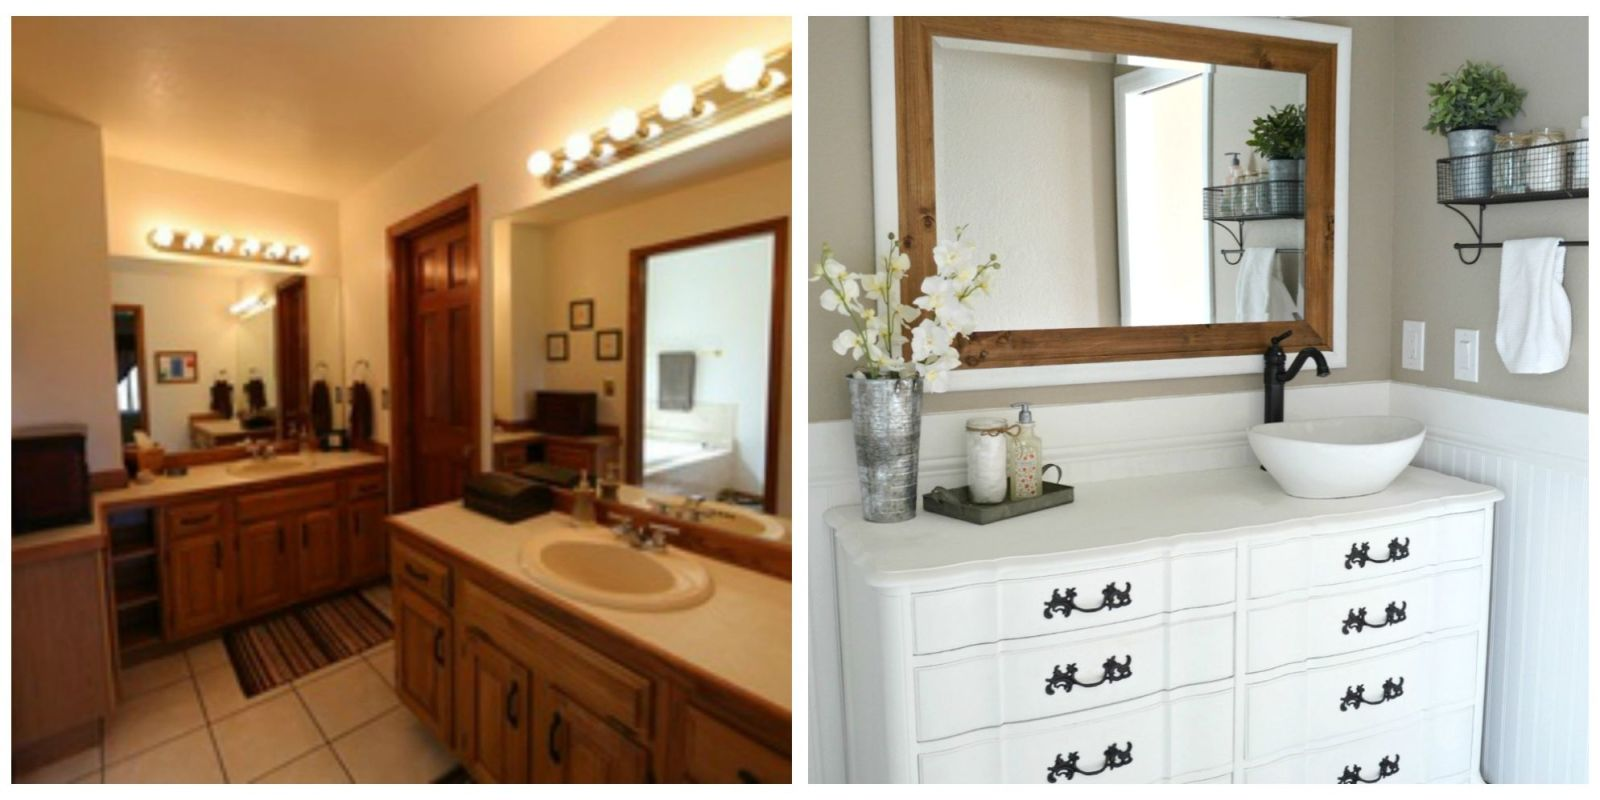 Home Makeover Ideas 5 brilliant design ideas from this elegant farmhouse bathroom